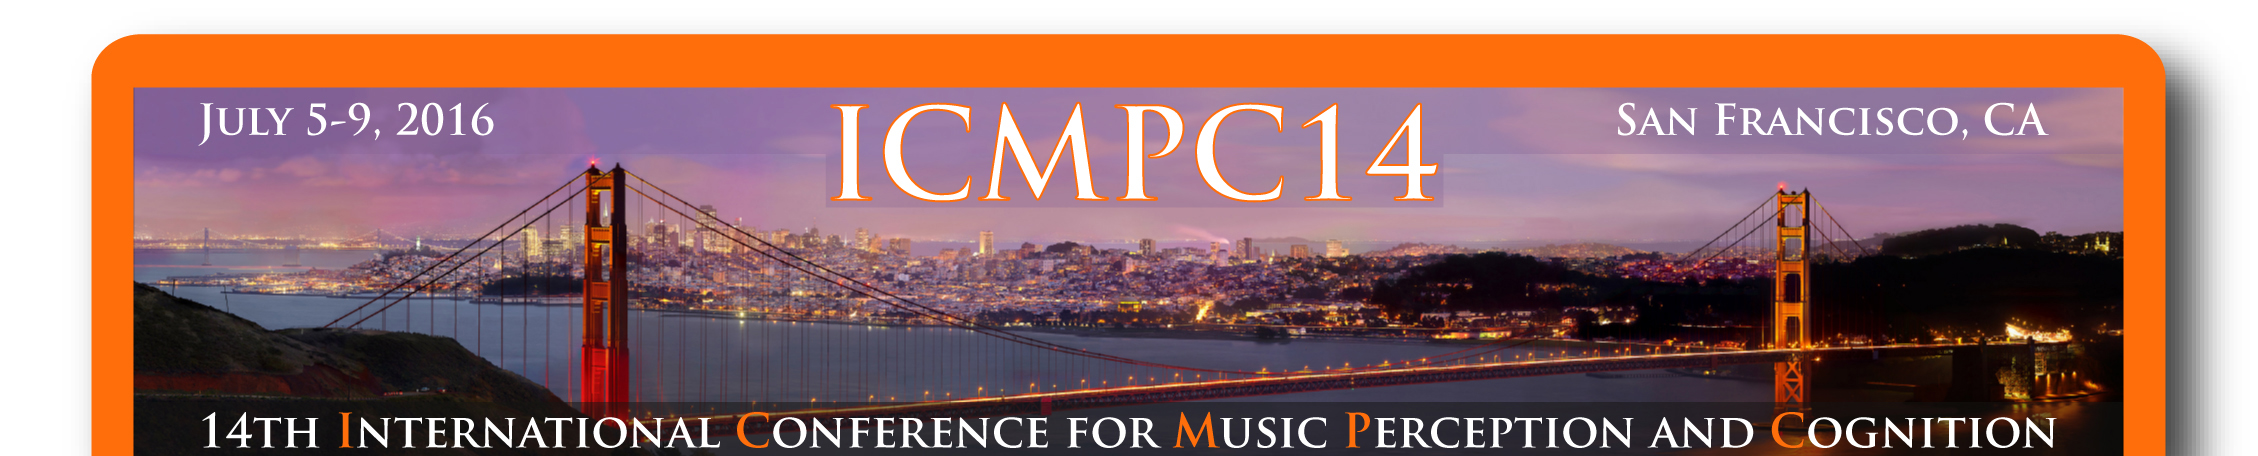 International Conference for Music Perception and Cognition 2016